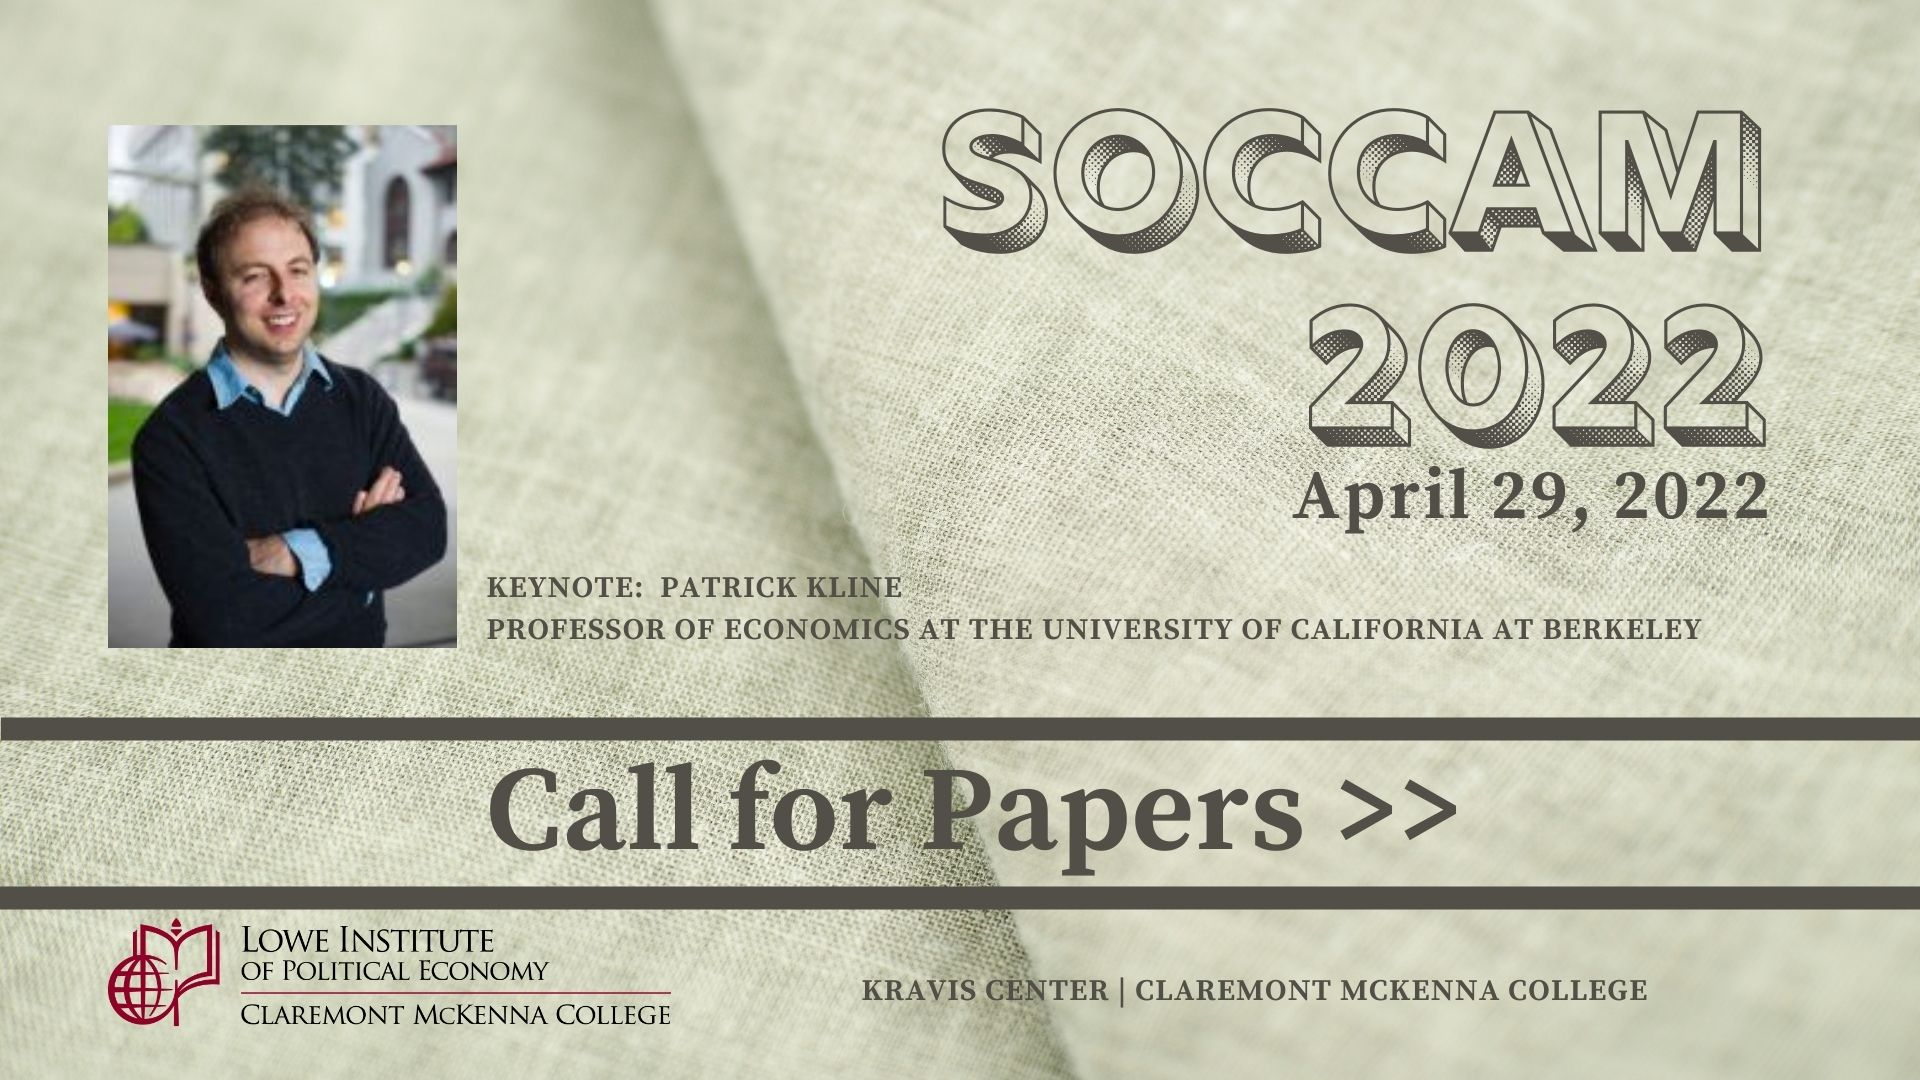 SoCCAM_Call for Papers 2022